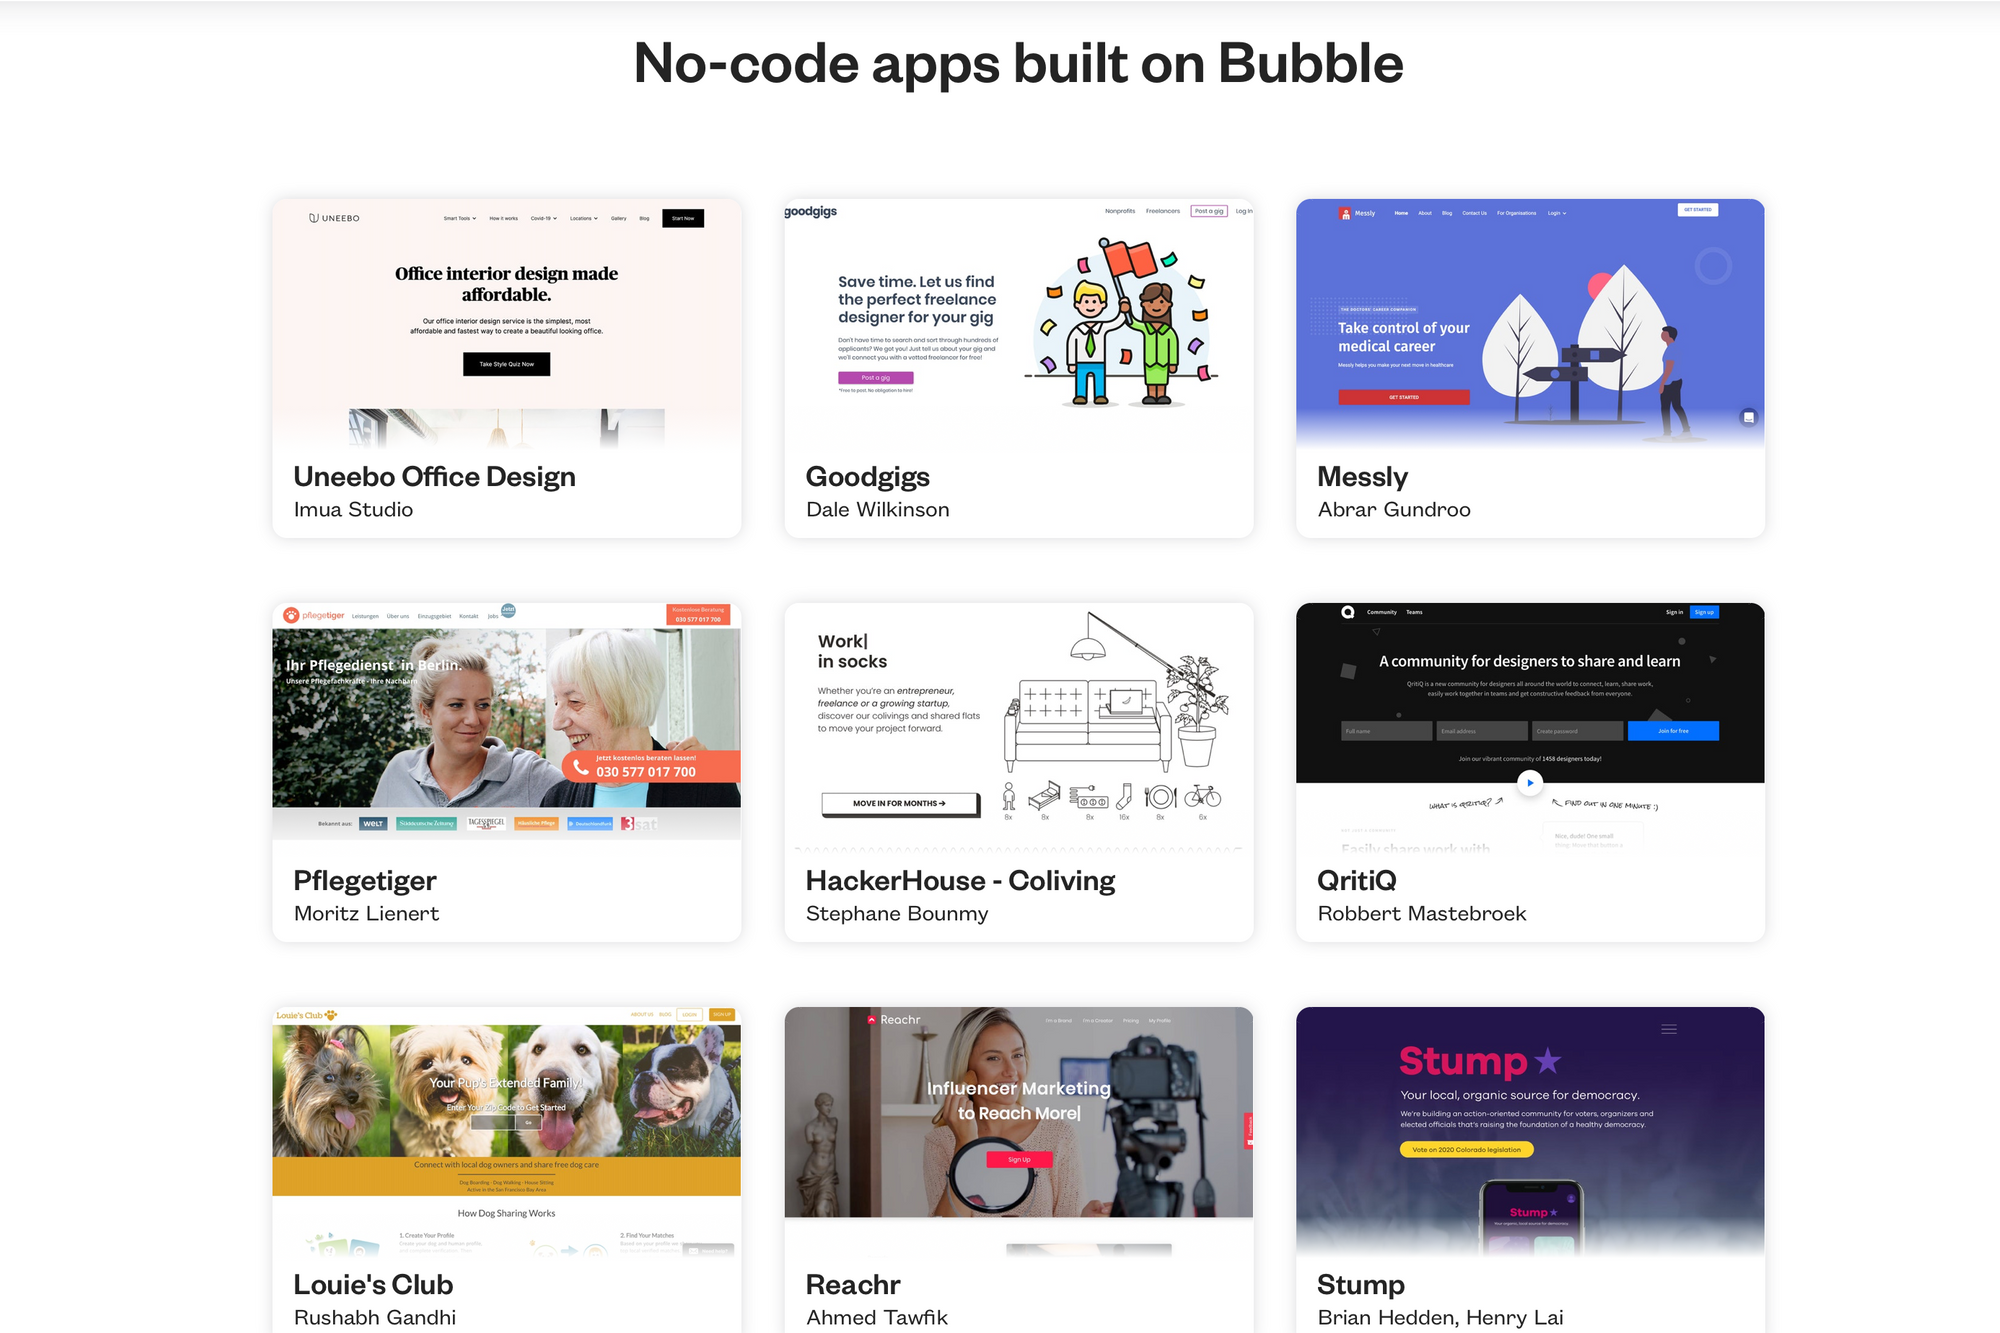 No-code apps built on Bubble